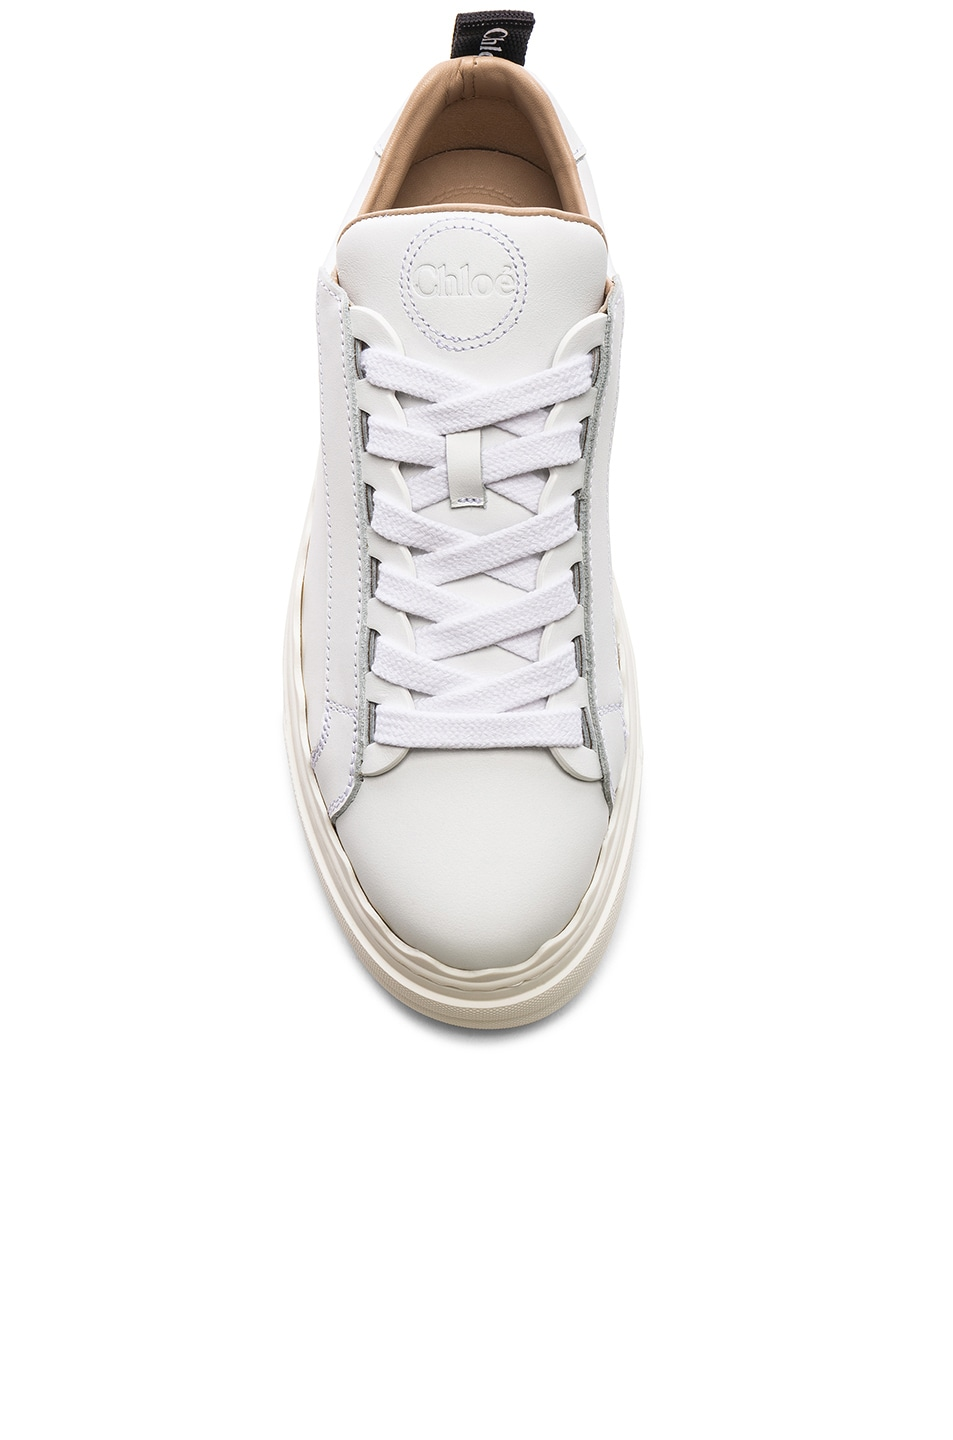 Image 4 of Chloe Low Top Sneakers in White